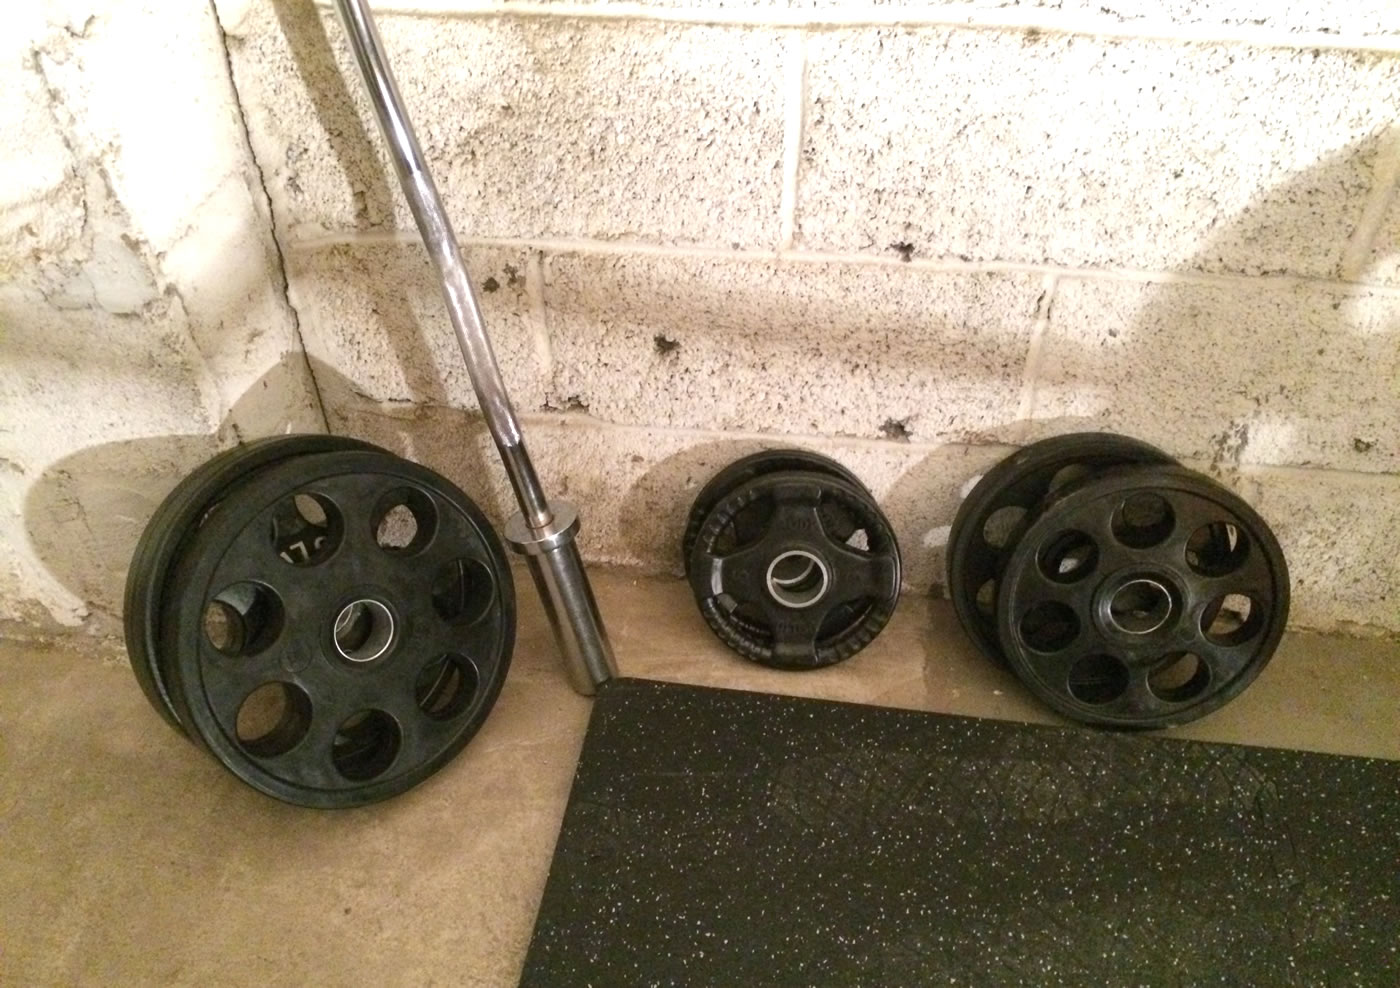 Building a home gym - hudson steel co, olympic weight plates with rubber coating.